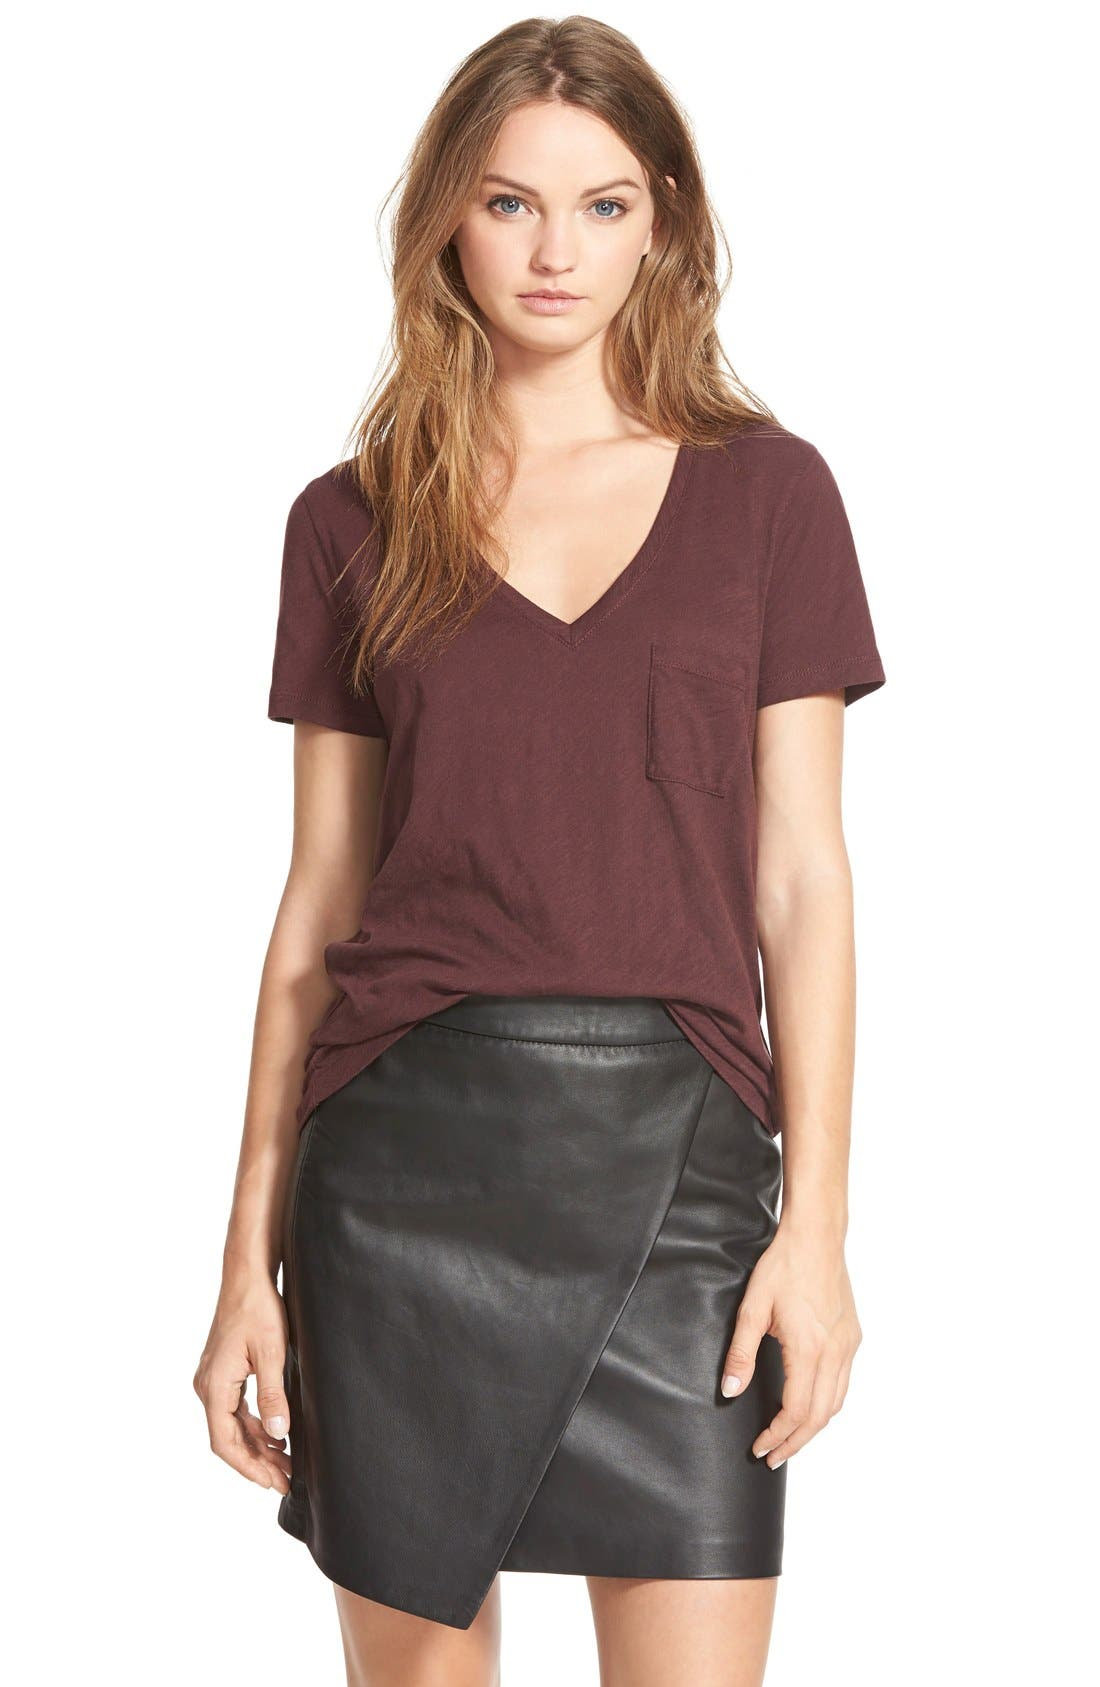 Alternate Image 1 Selected - Madewell 'Whisper' Cotton V-Neck Pocket Tee